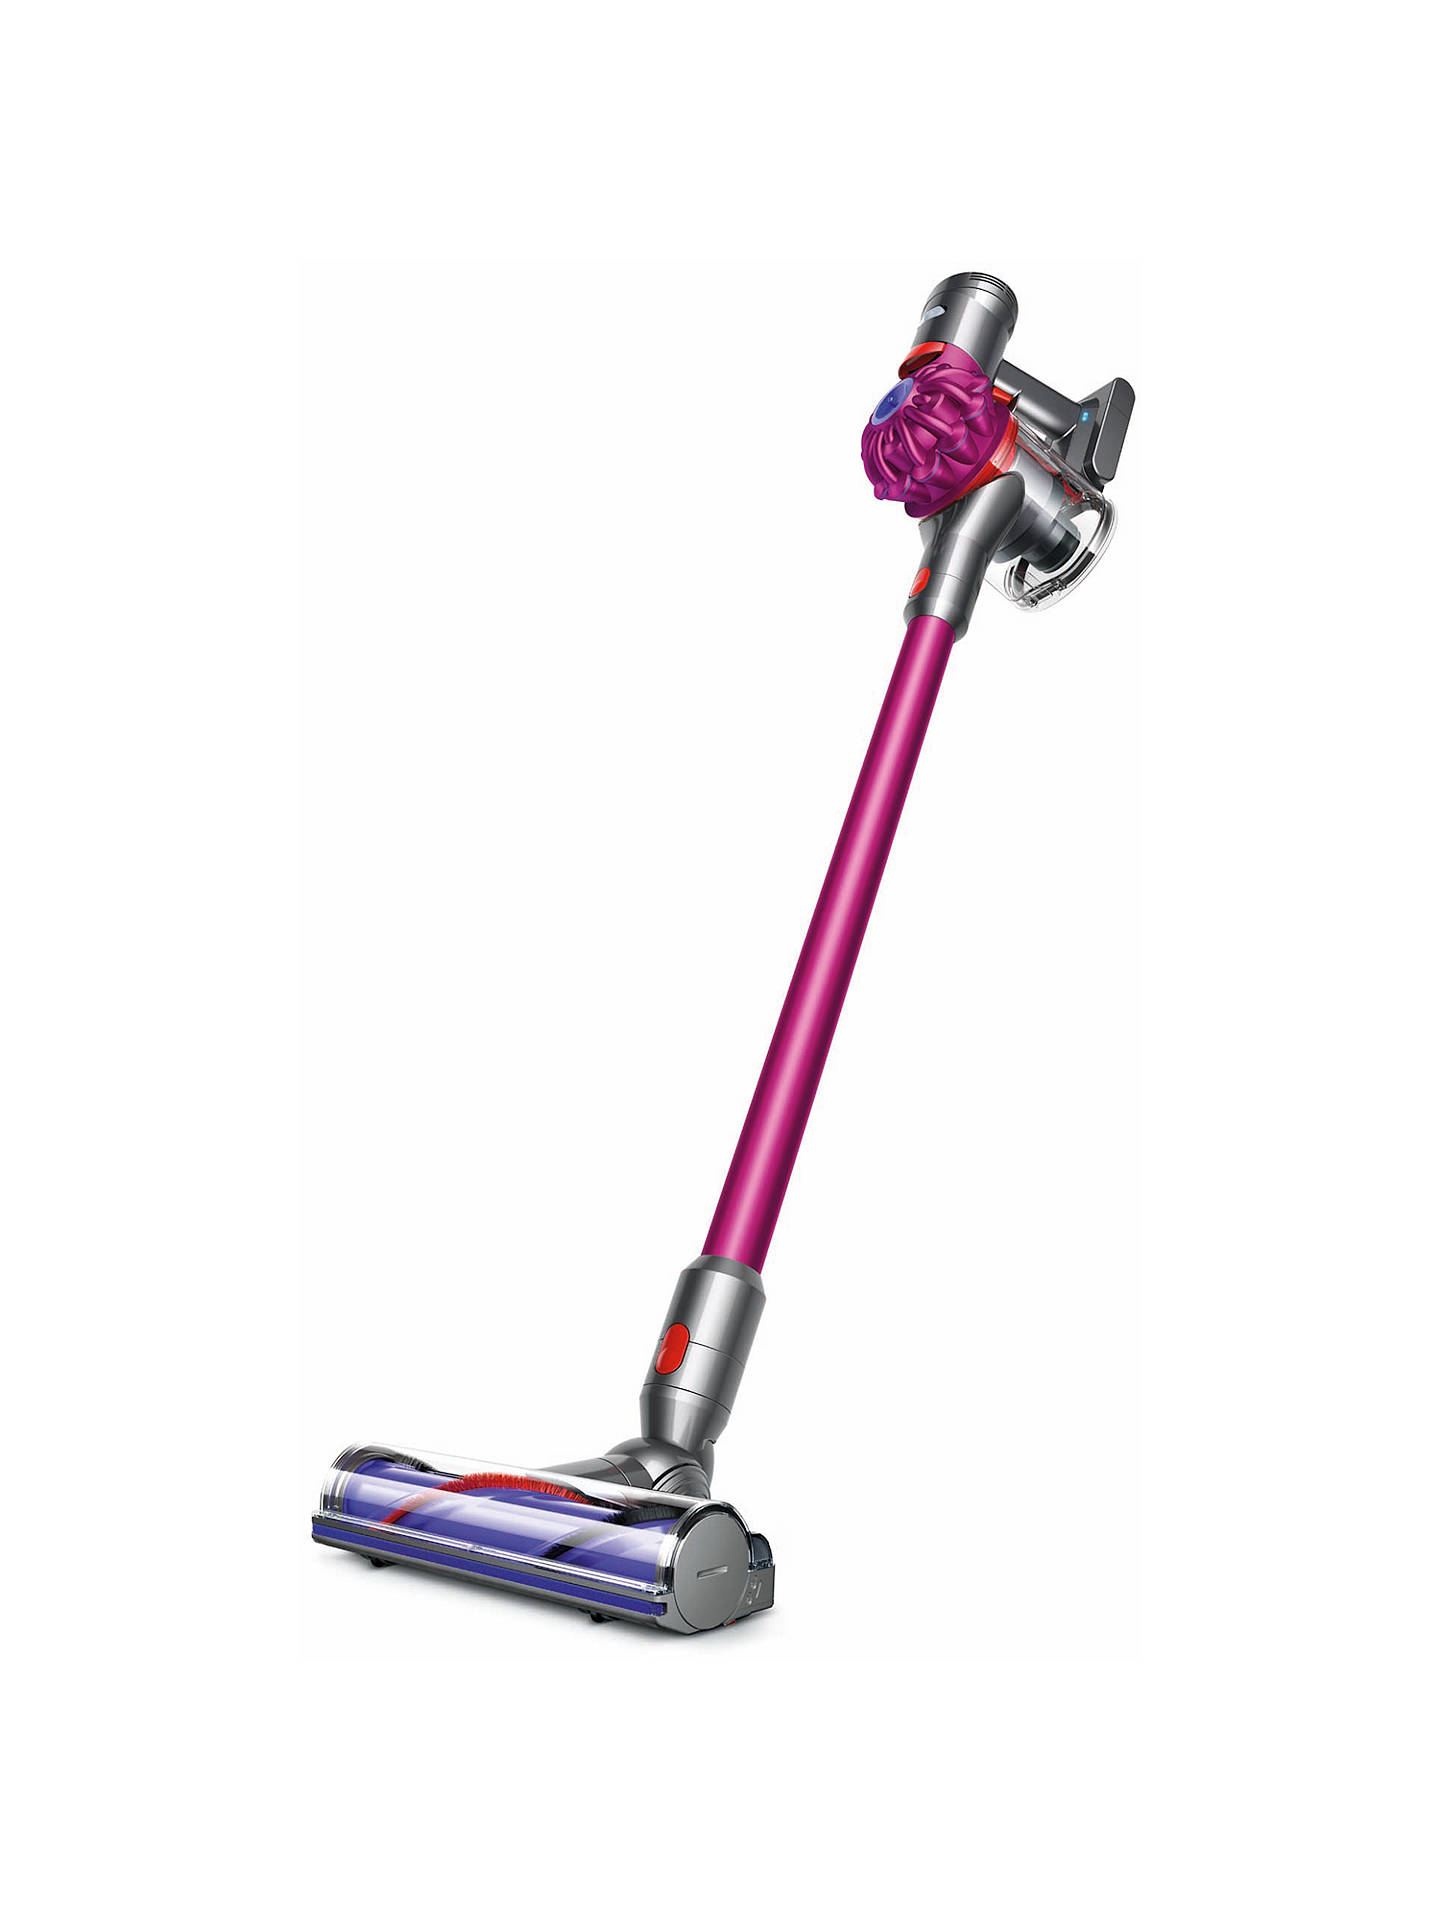 Top 3 Most Popular Types Of Vacuum Cleaners